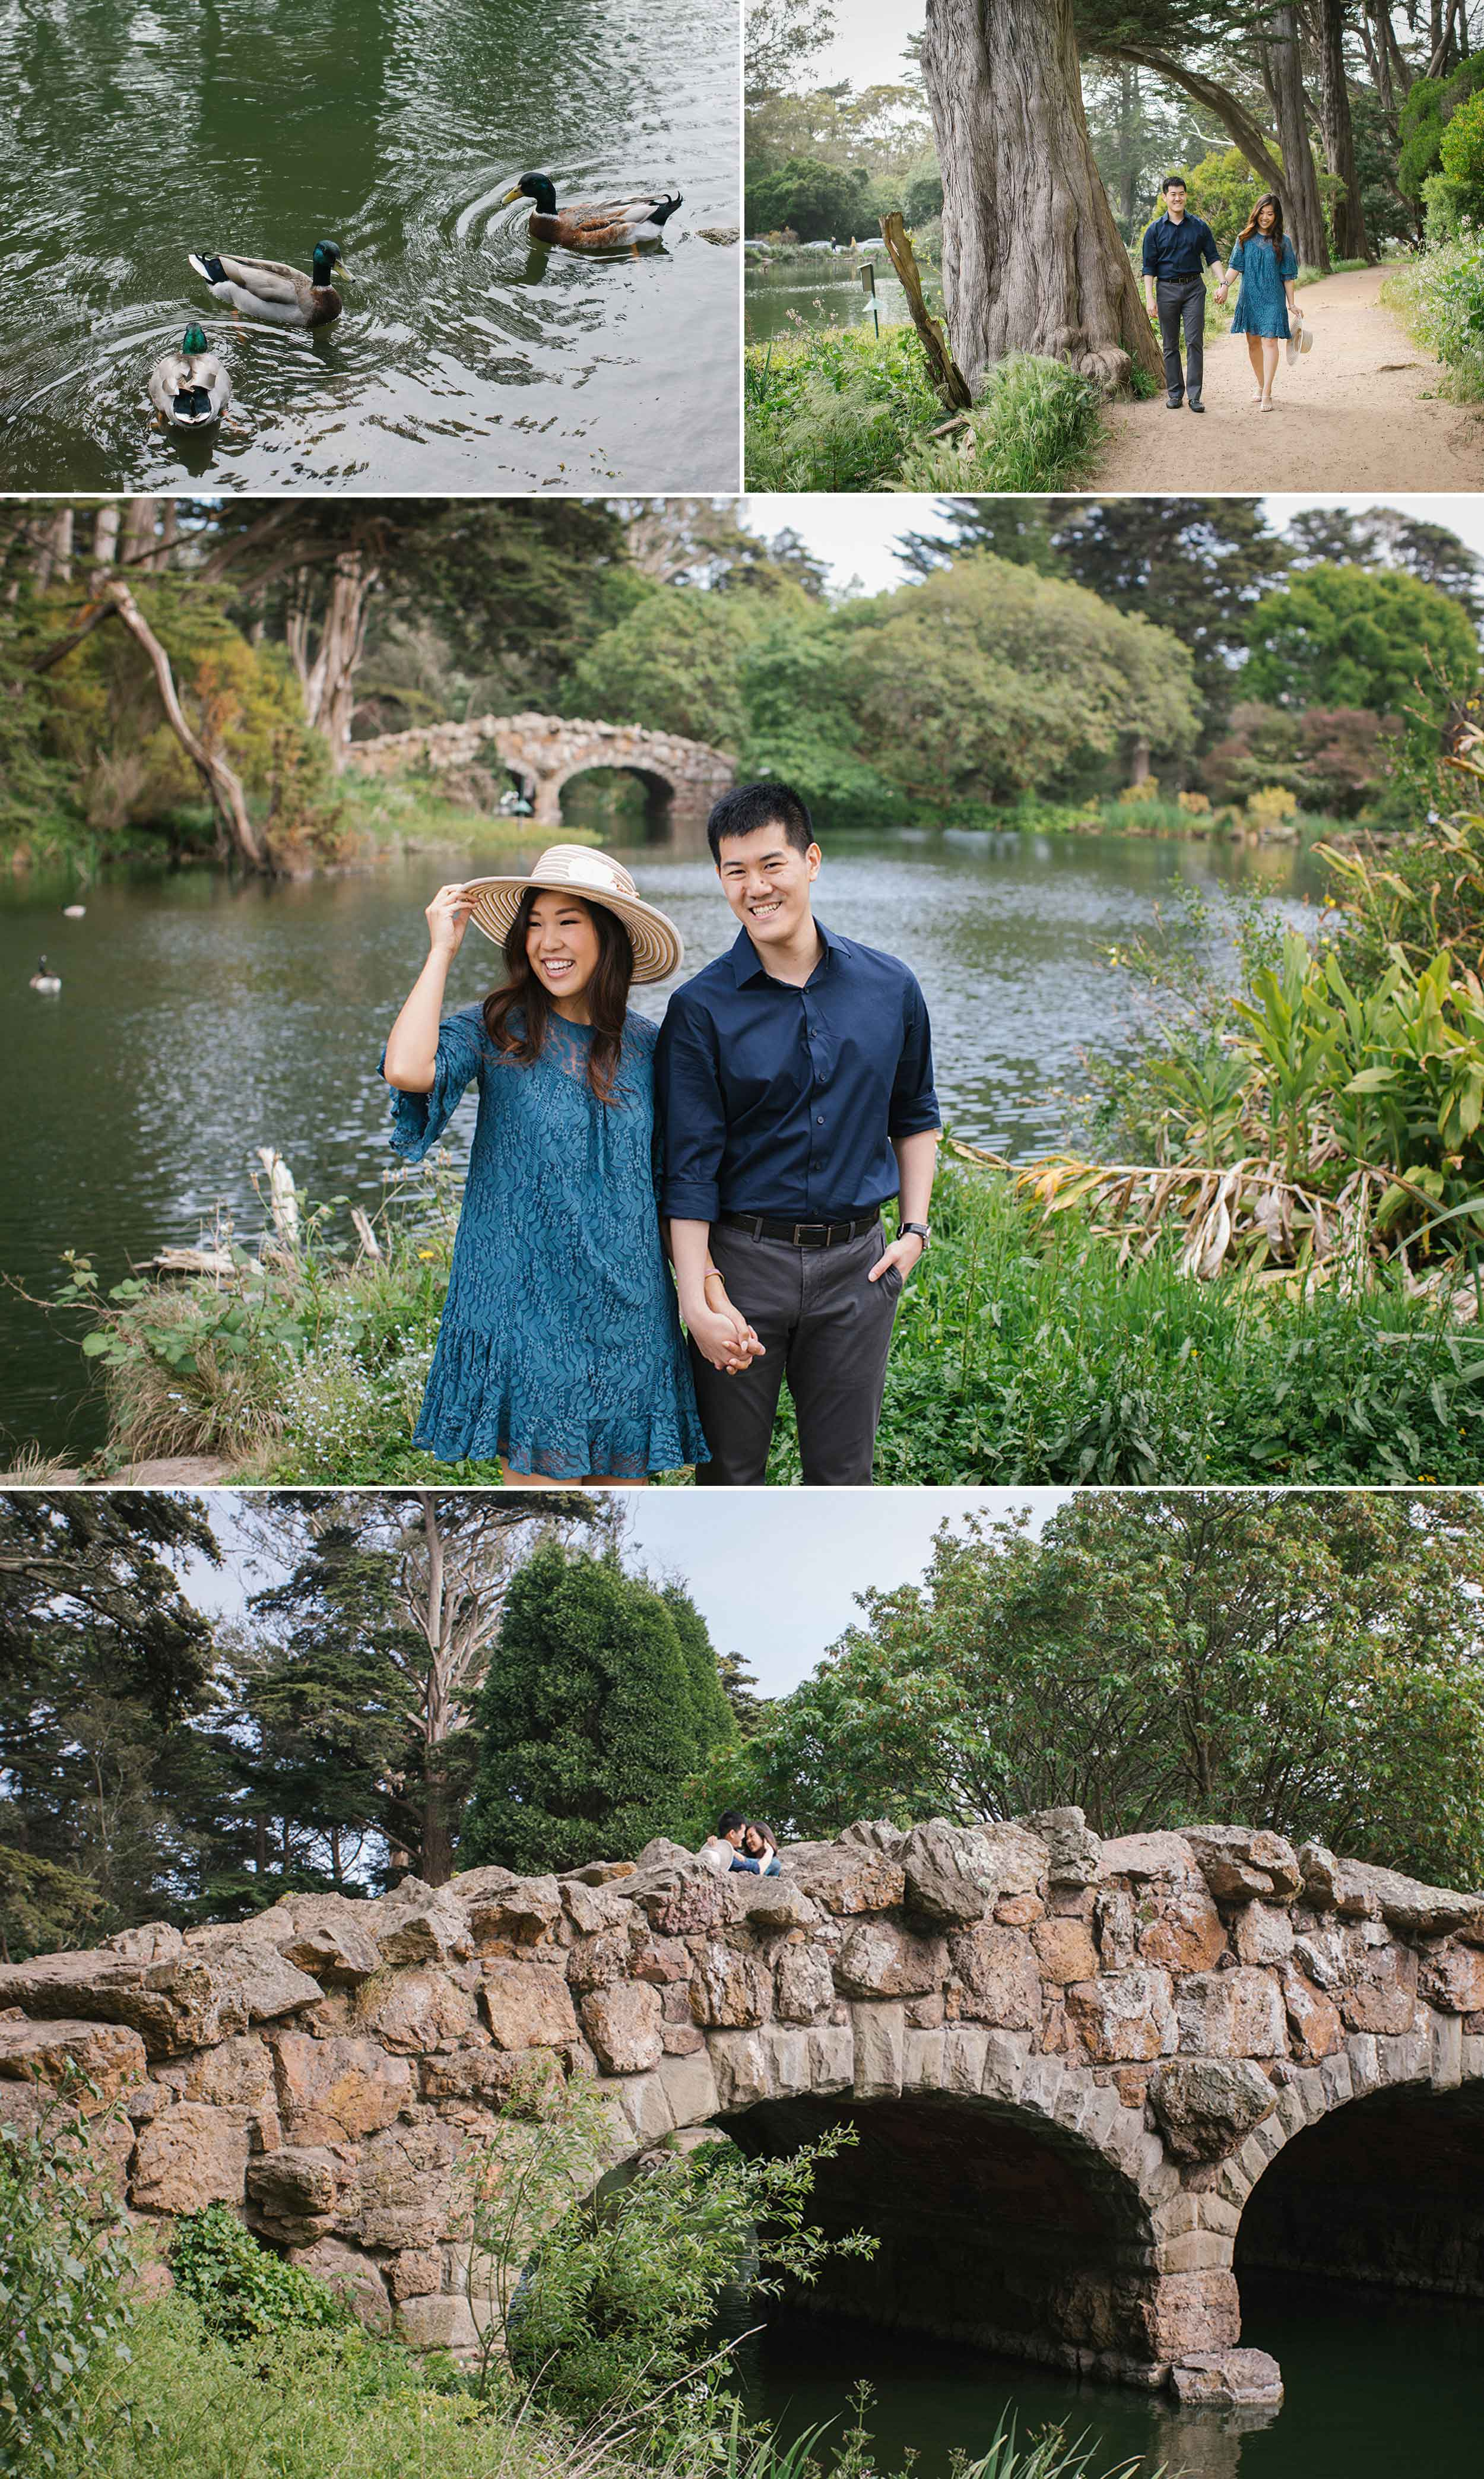 The stone bridge at Golden Gate Park's Stow Lake is a great spot for engagement sessions!